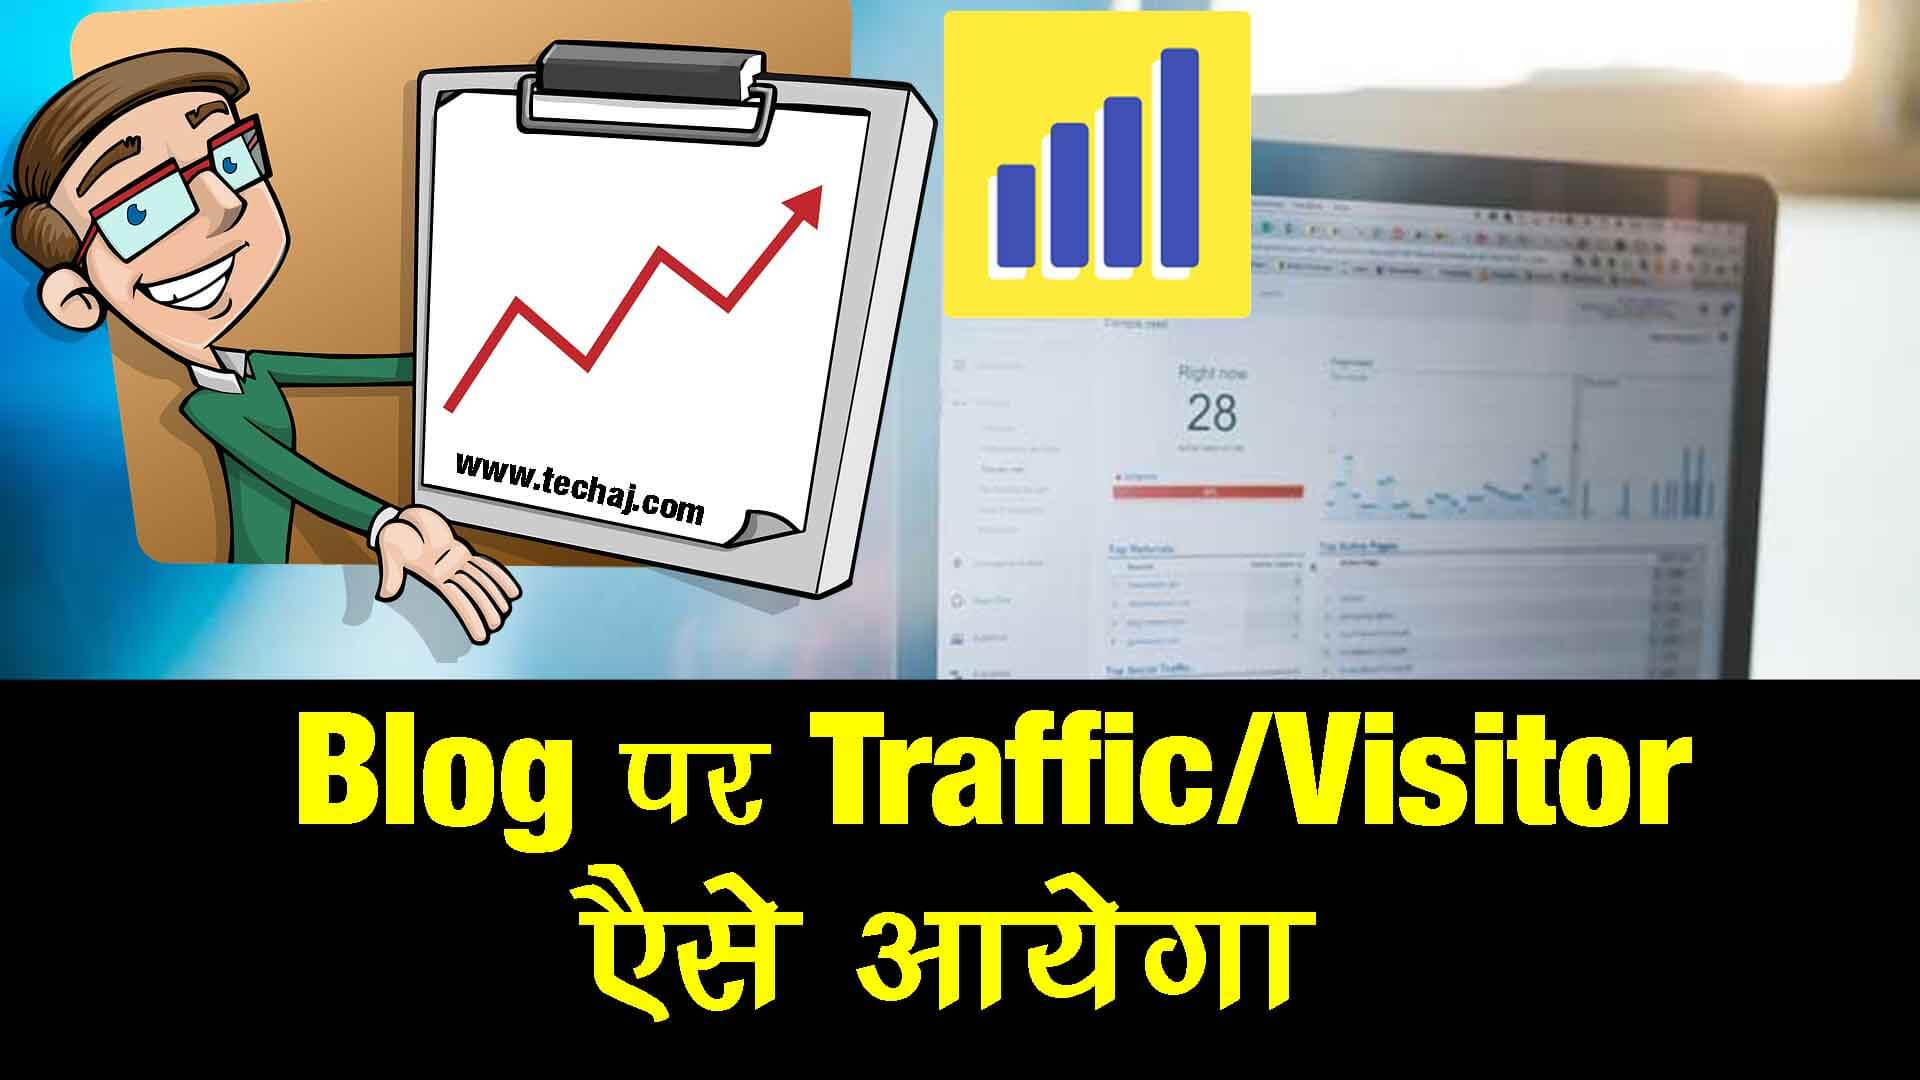 blog par traffic kaise badhaye